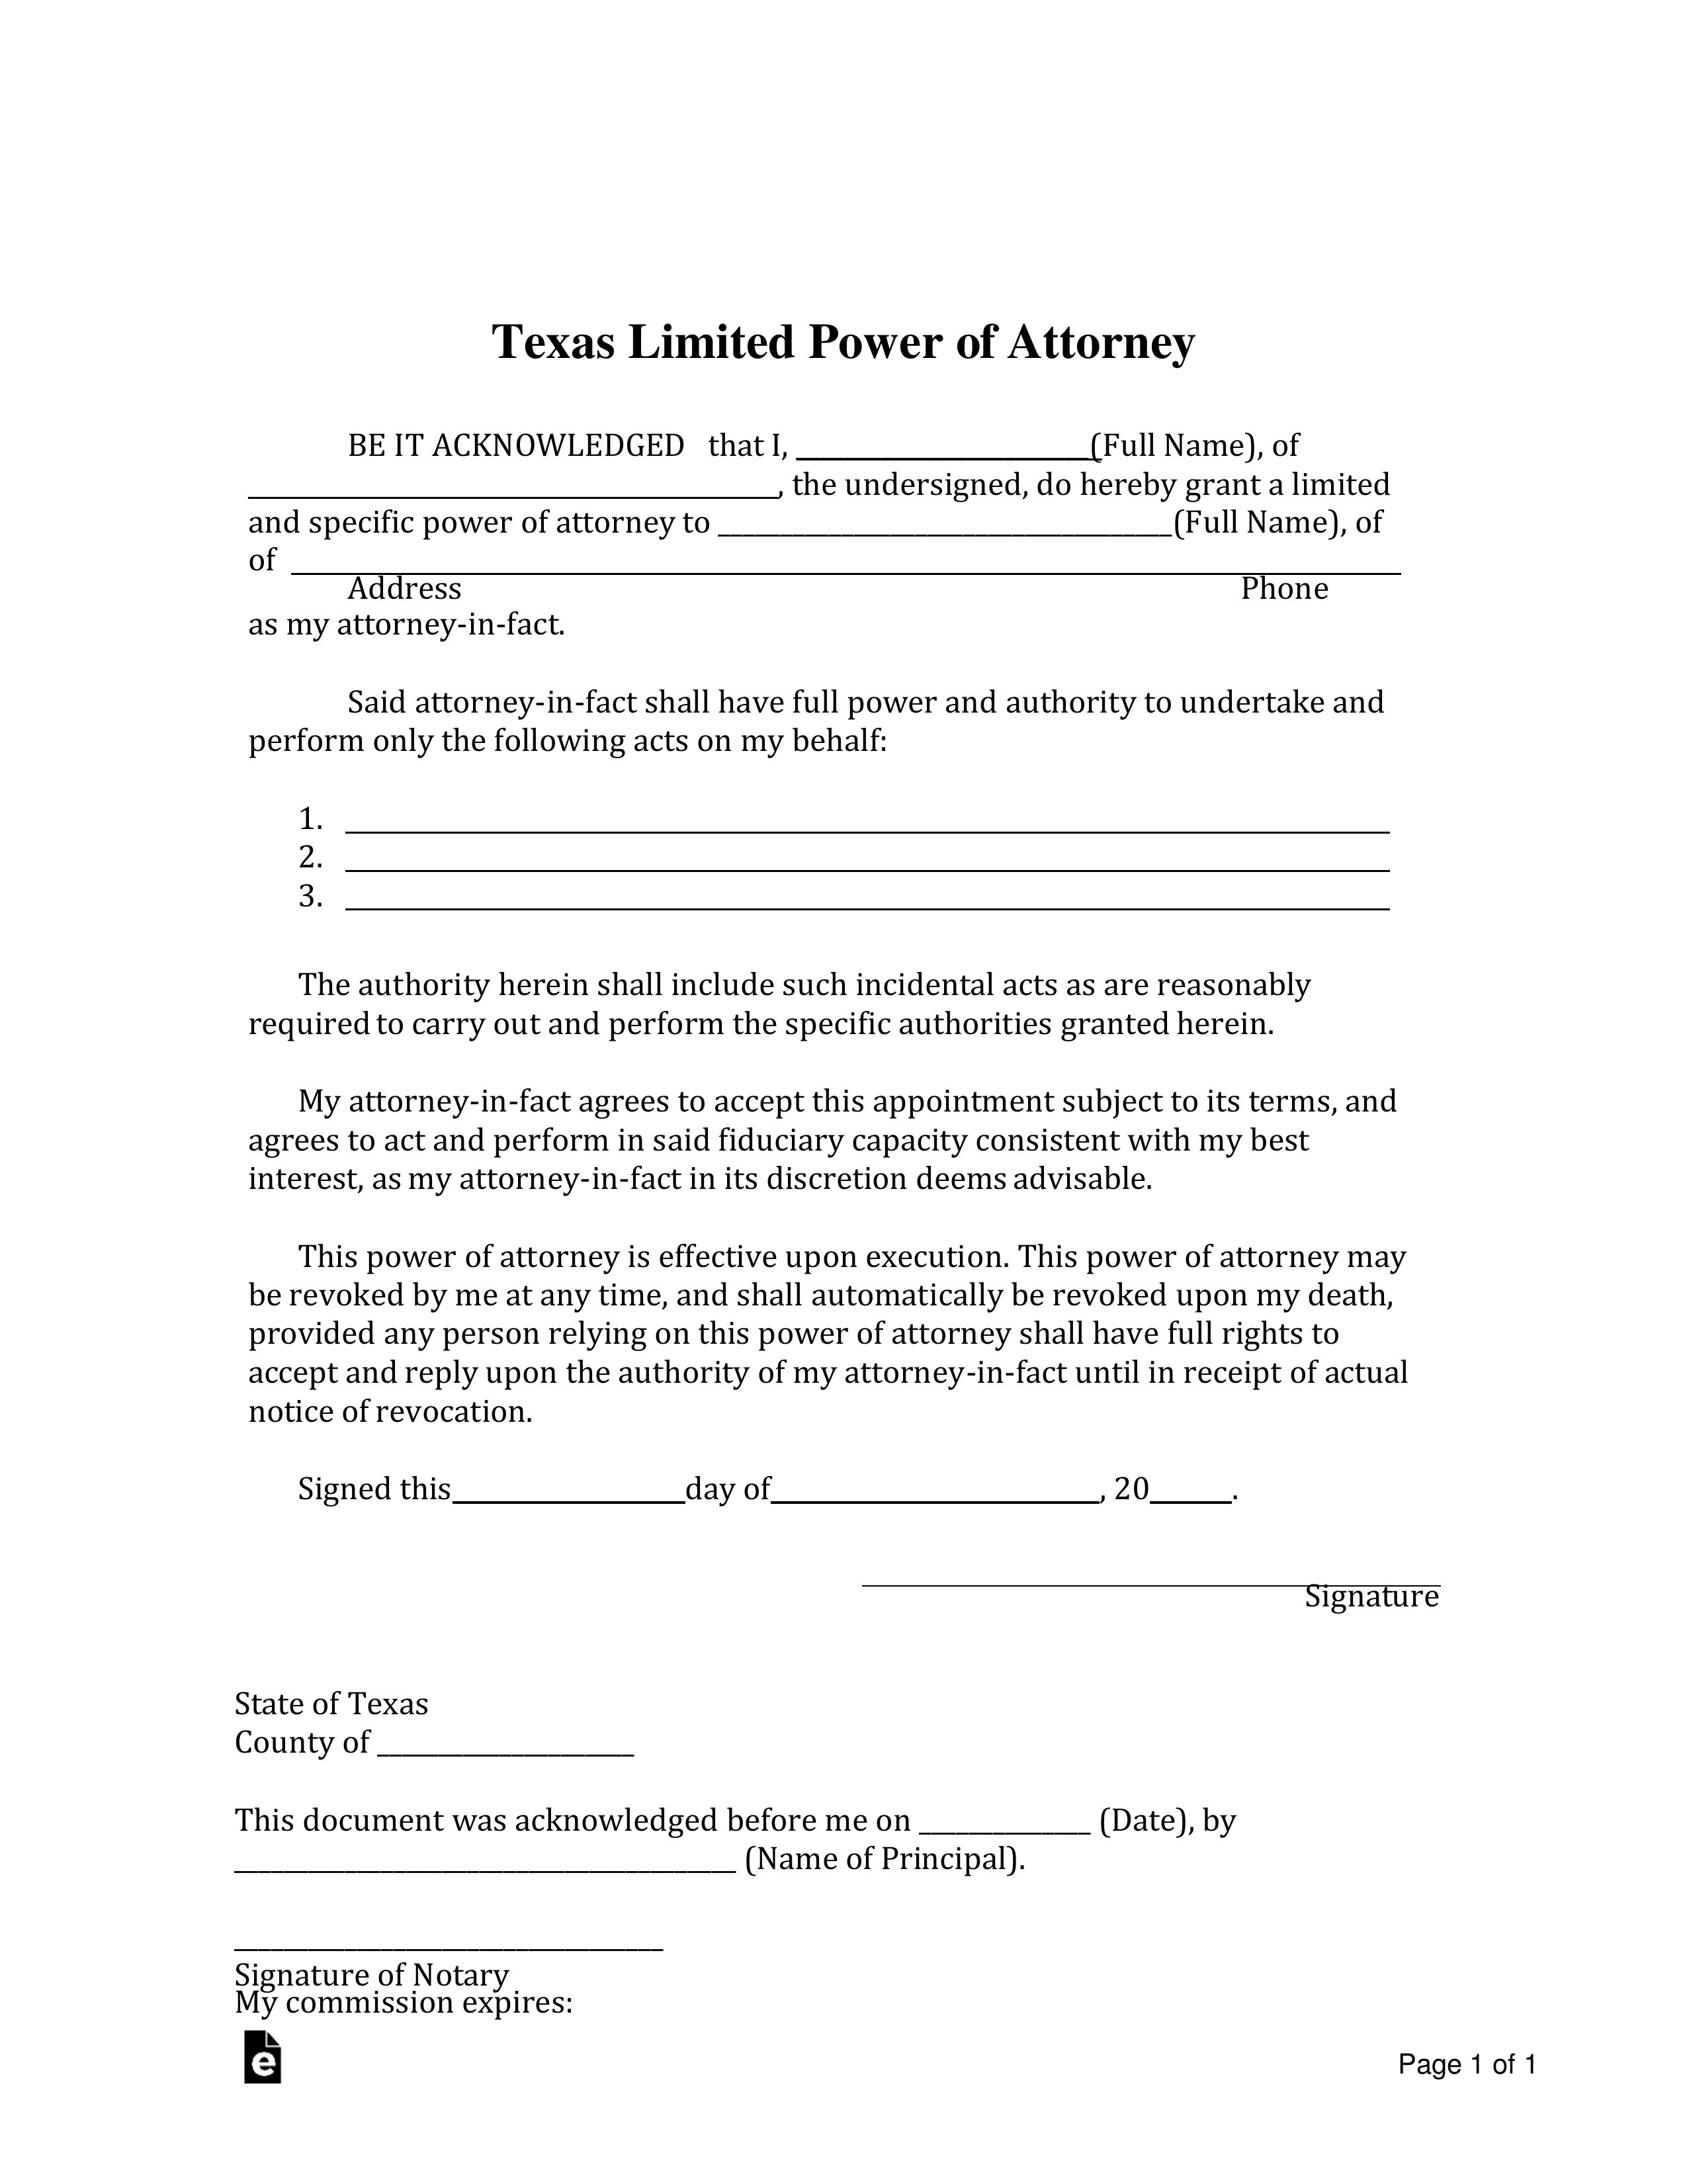 Free Texas Limited Power of Attorney Form - Word | PDF ...